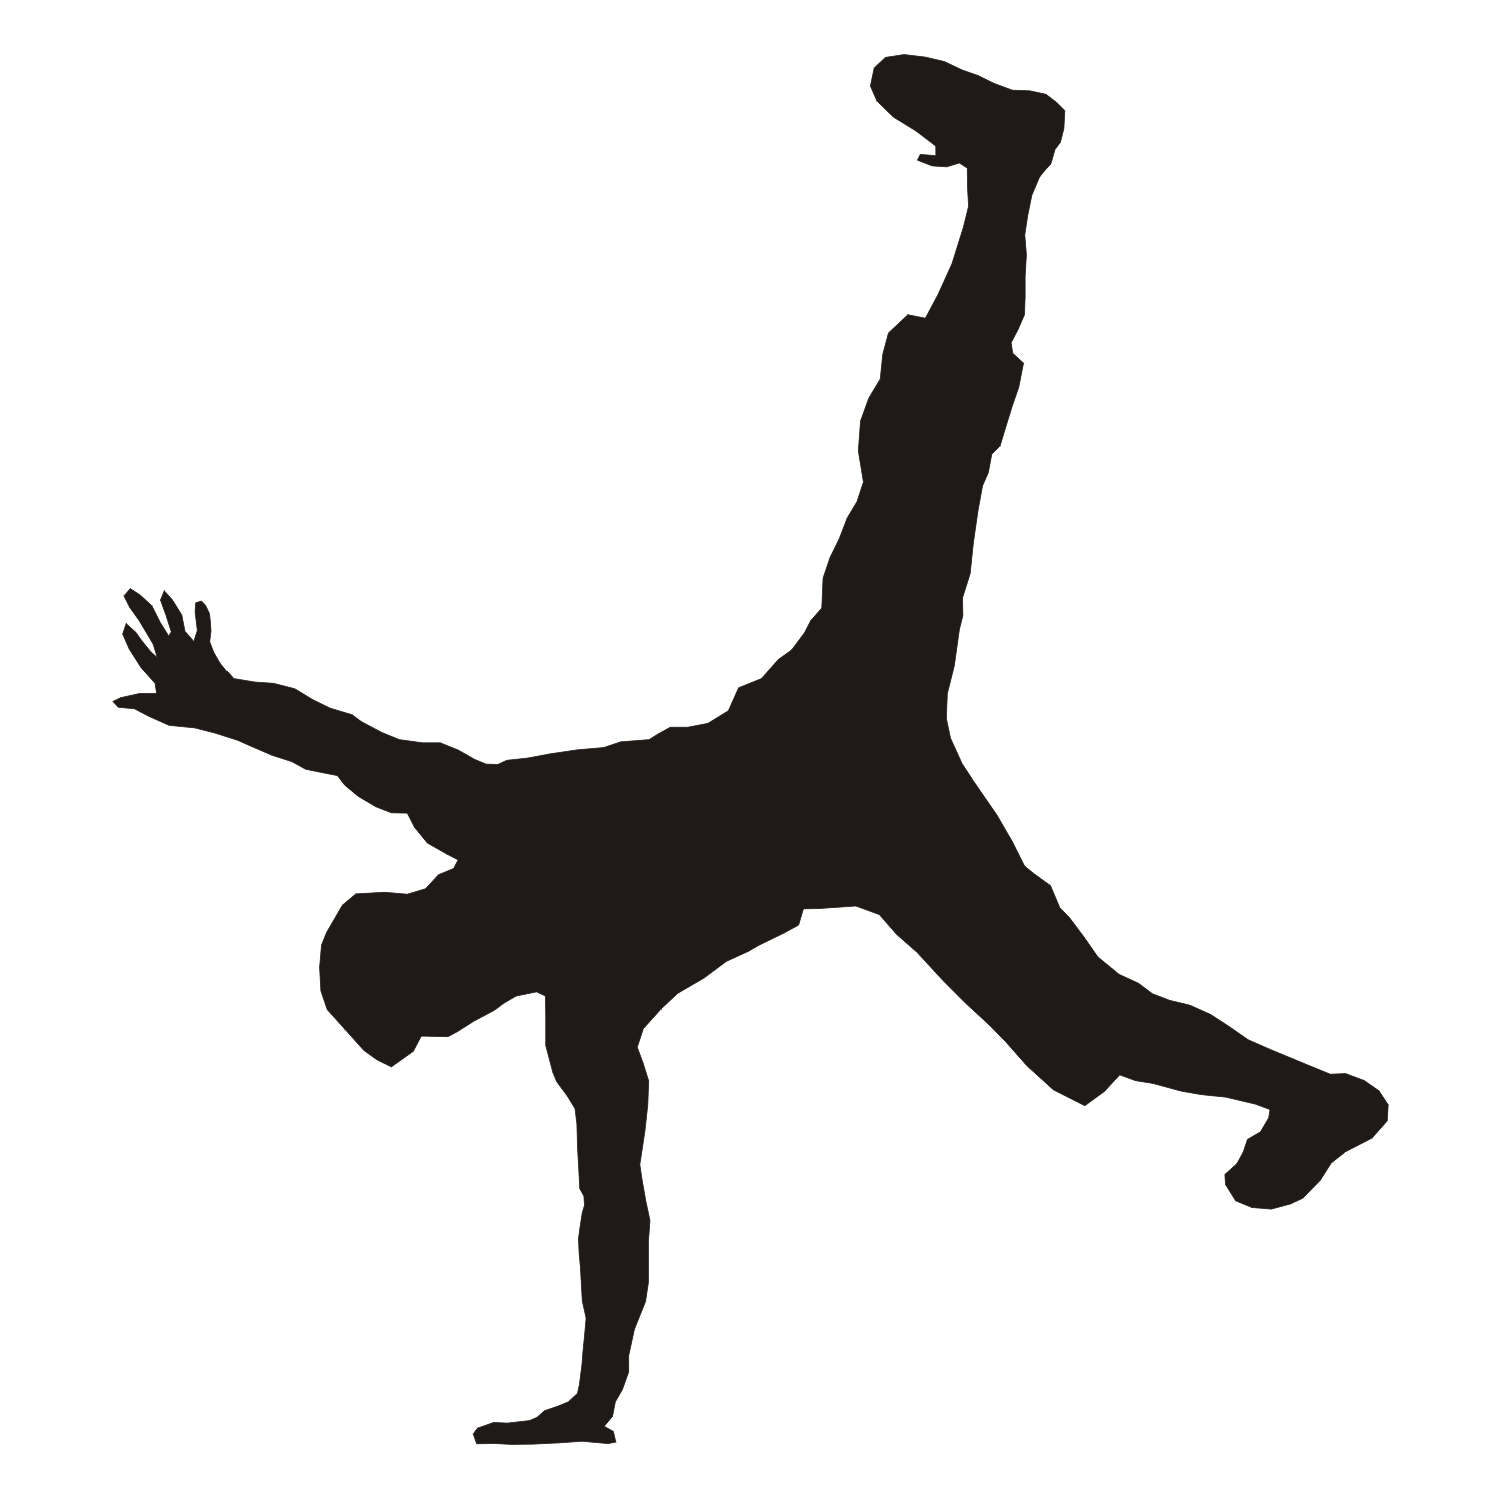 Breakdance clipart free clipart library Breakdancer | Download | Vector free, Silhouette vector, Dancer ... clipart library